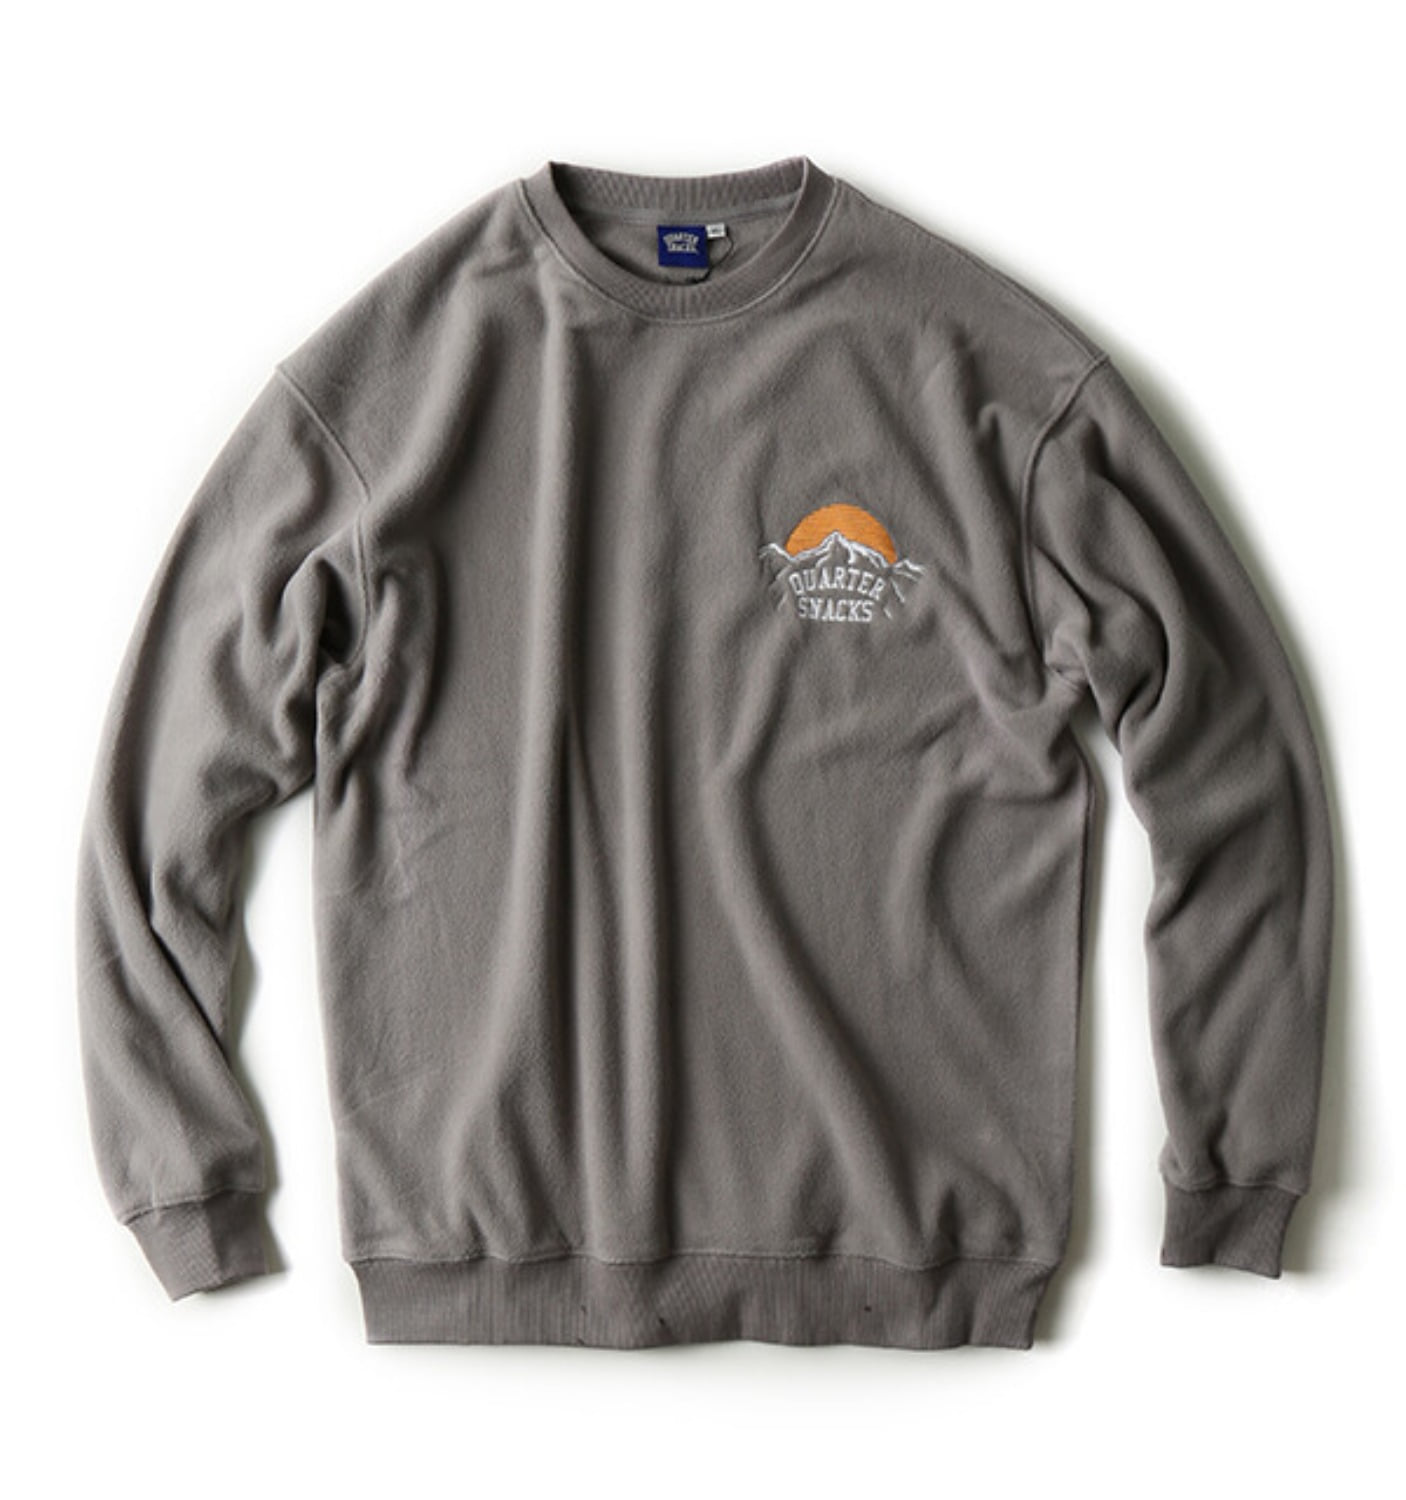 MOUNTAIN LOGO MICRO FLEECE CREW GREY